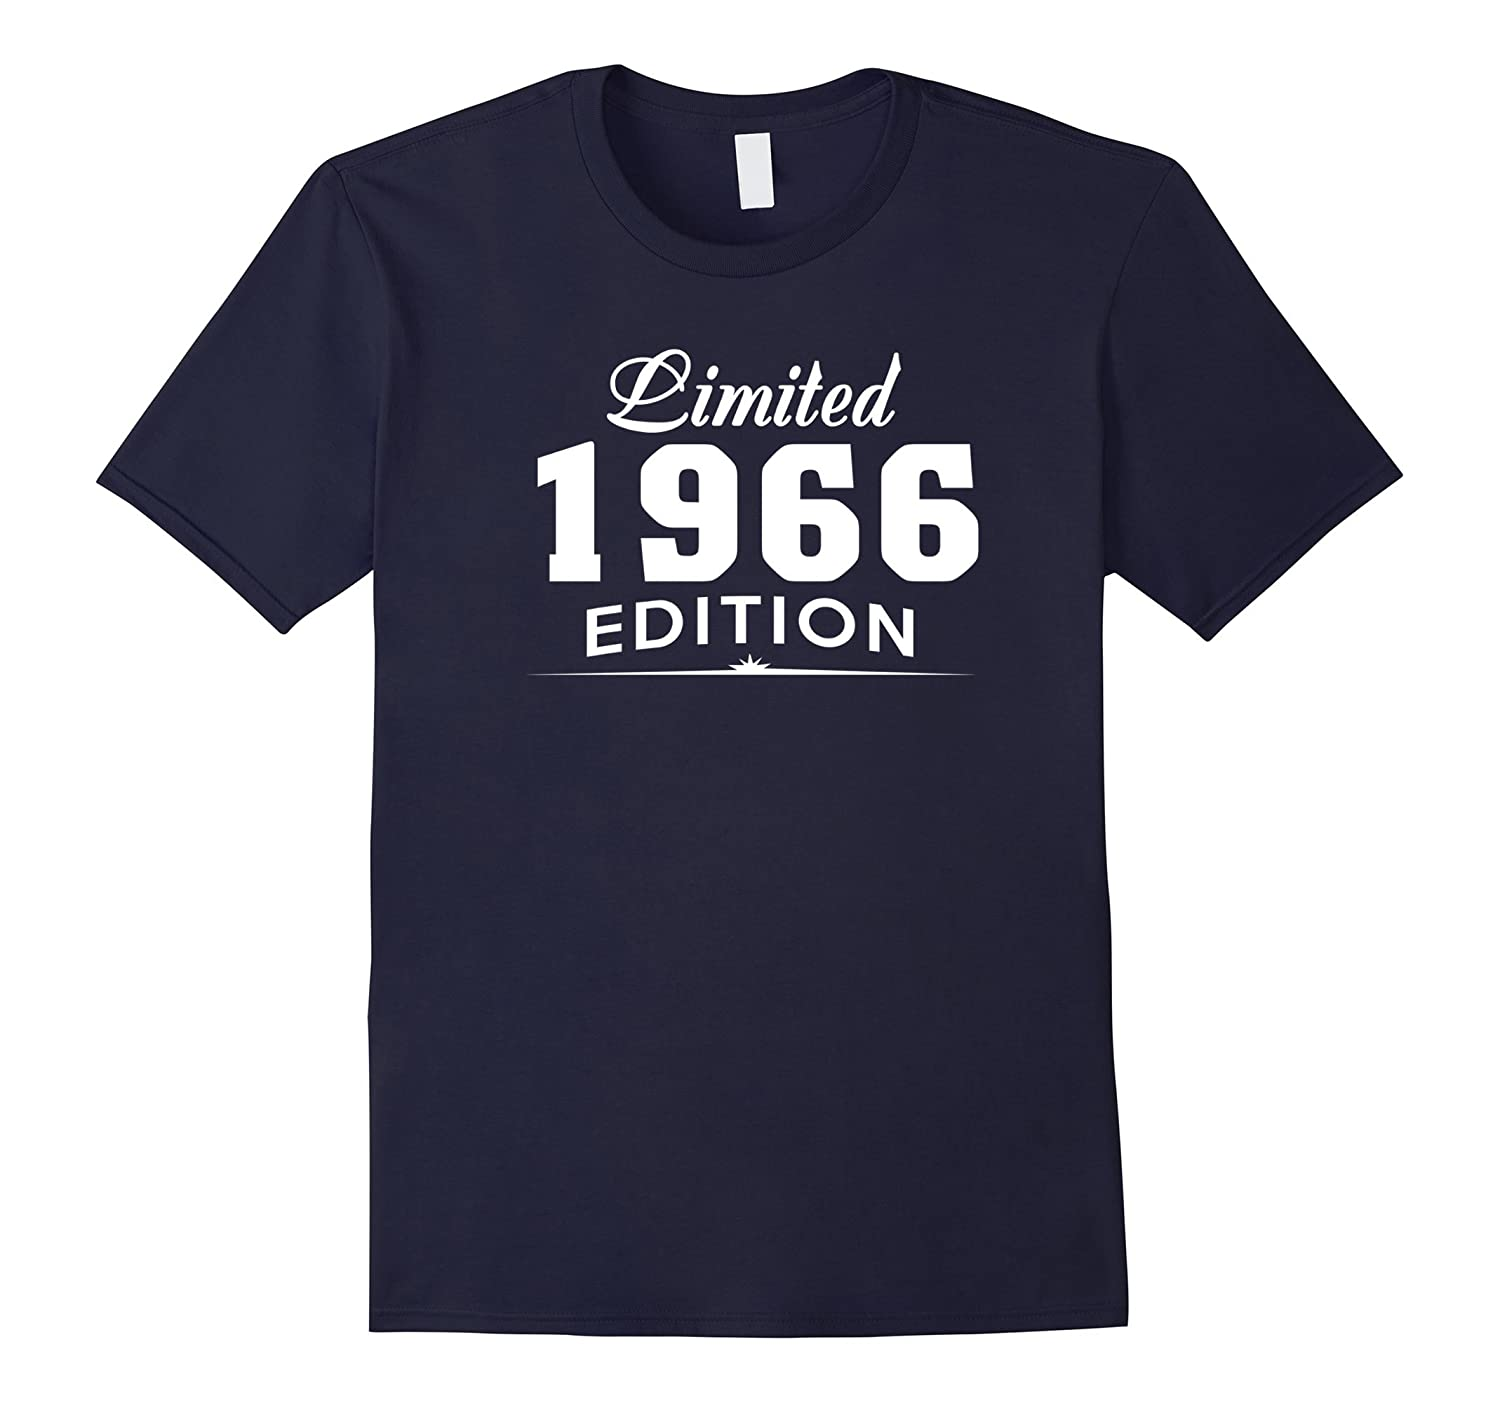 Limited 1966 Edition T-Shirt - 51st Birthday Gift Ideas-PL